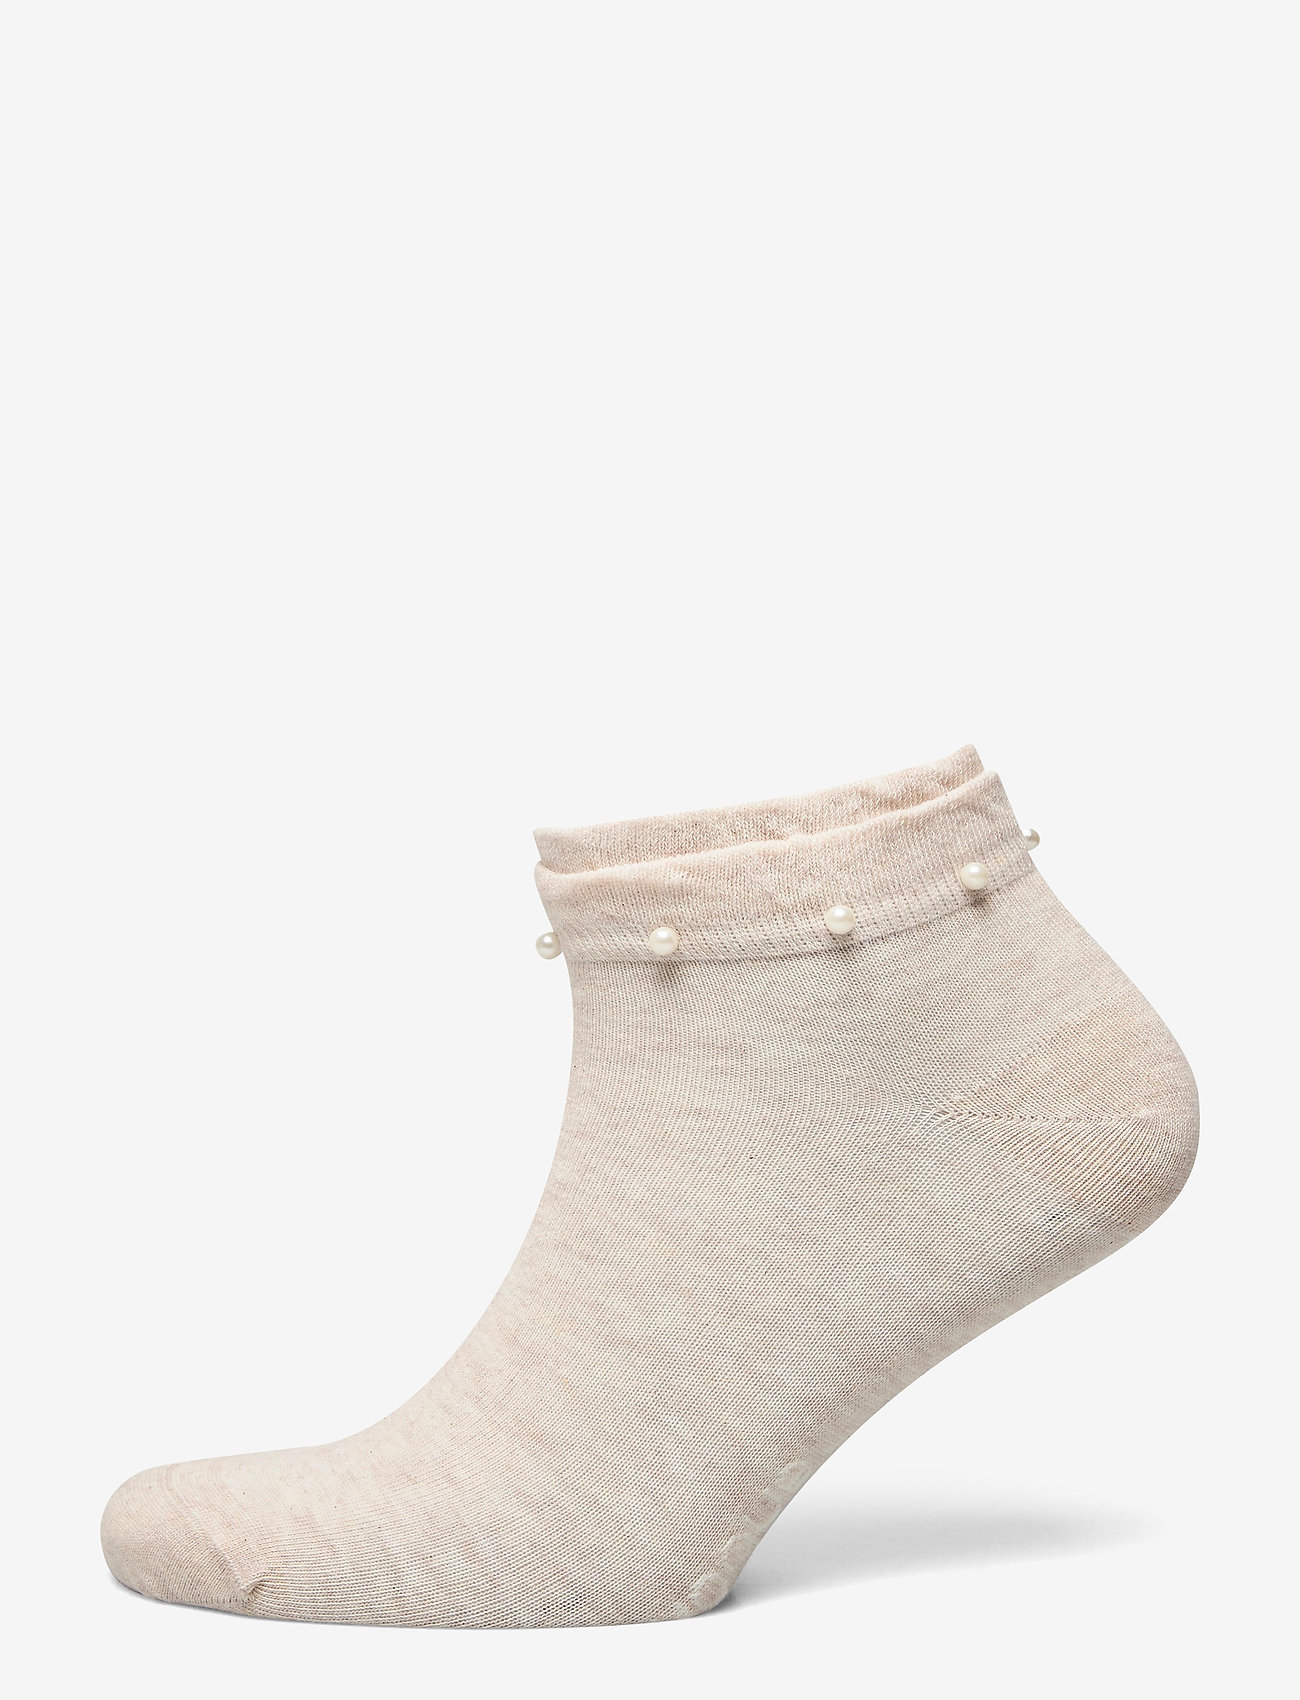 Vogue - Ladies anklesock, Lilou Sneaker - sneakersokken - light mel. beige - 0